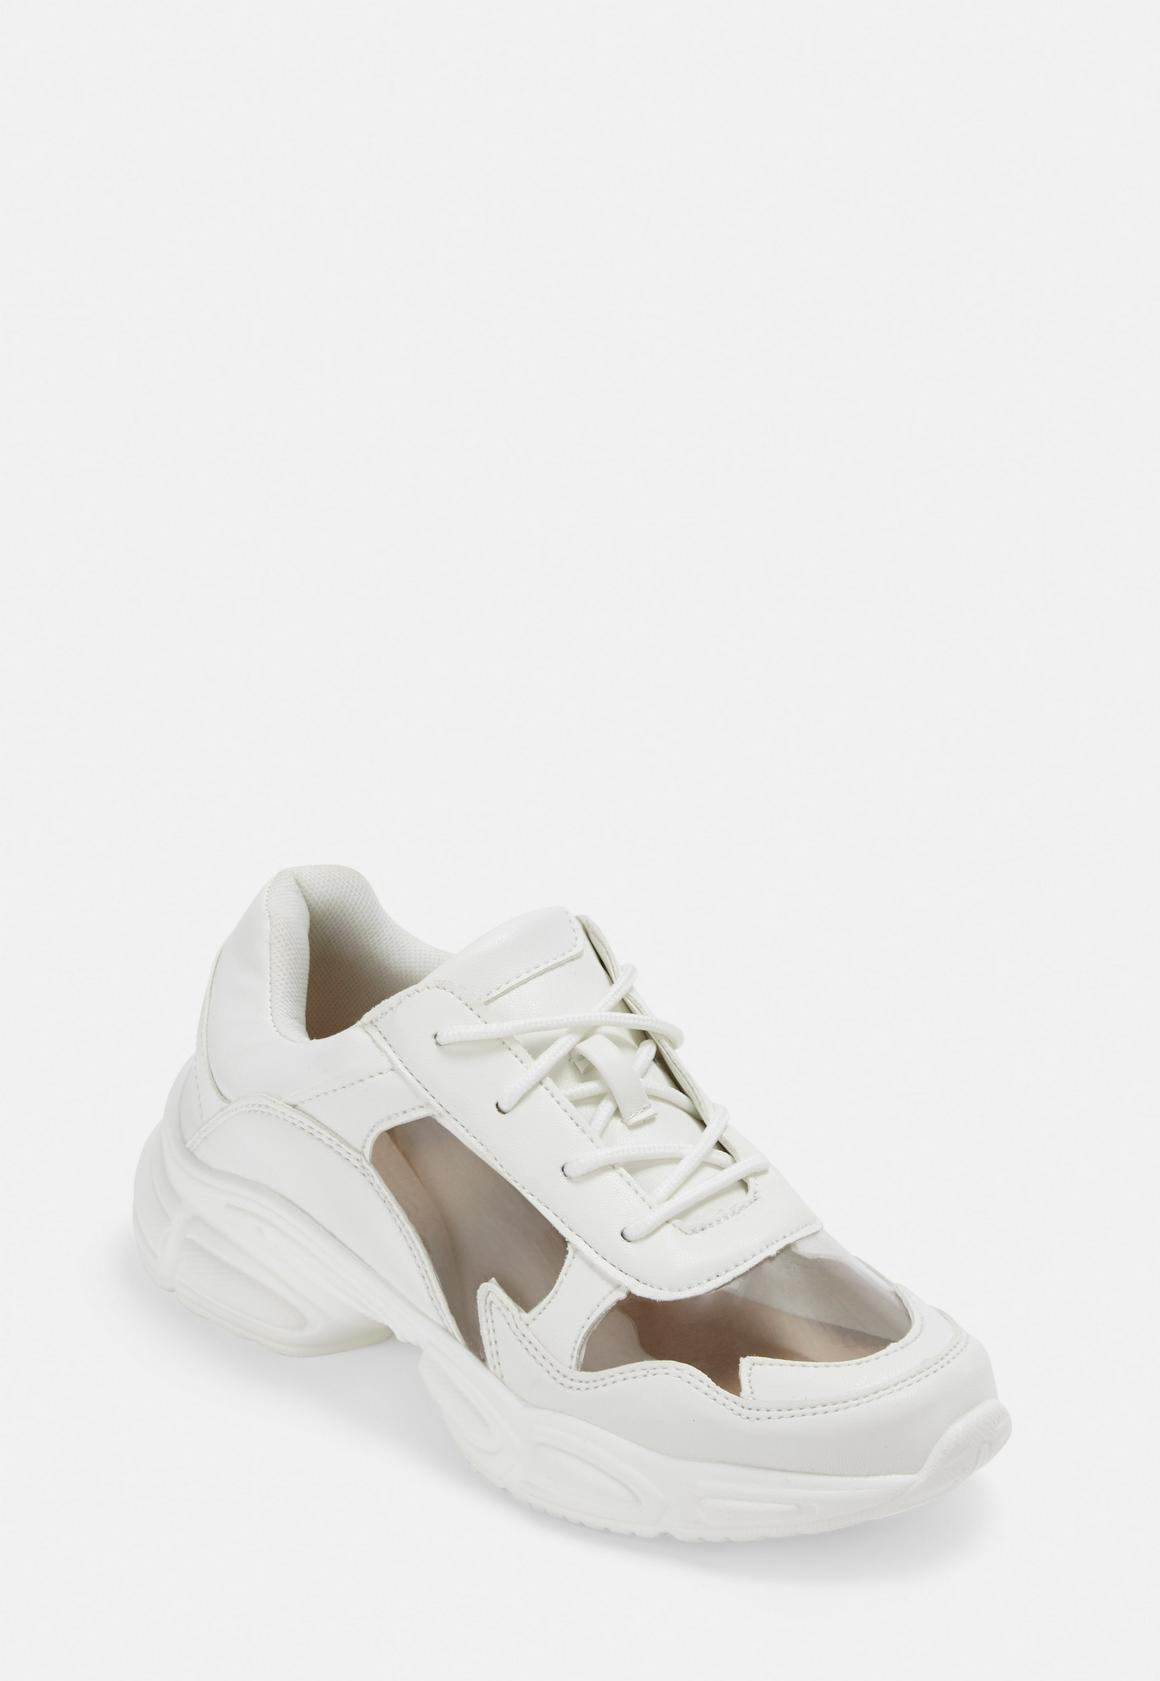 white-clear-panel-chunky-sneakers.jpg